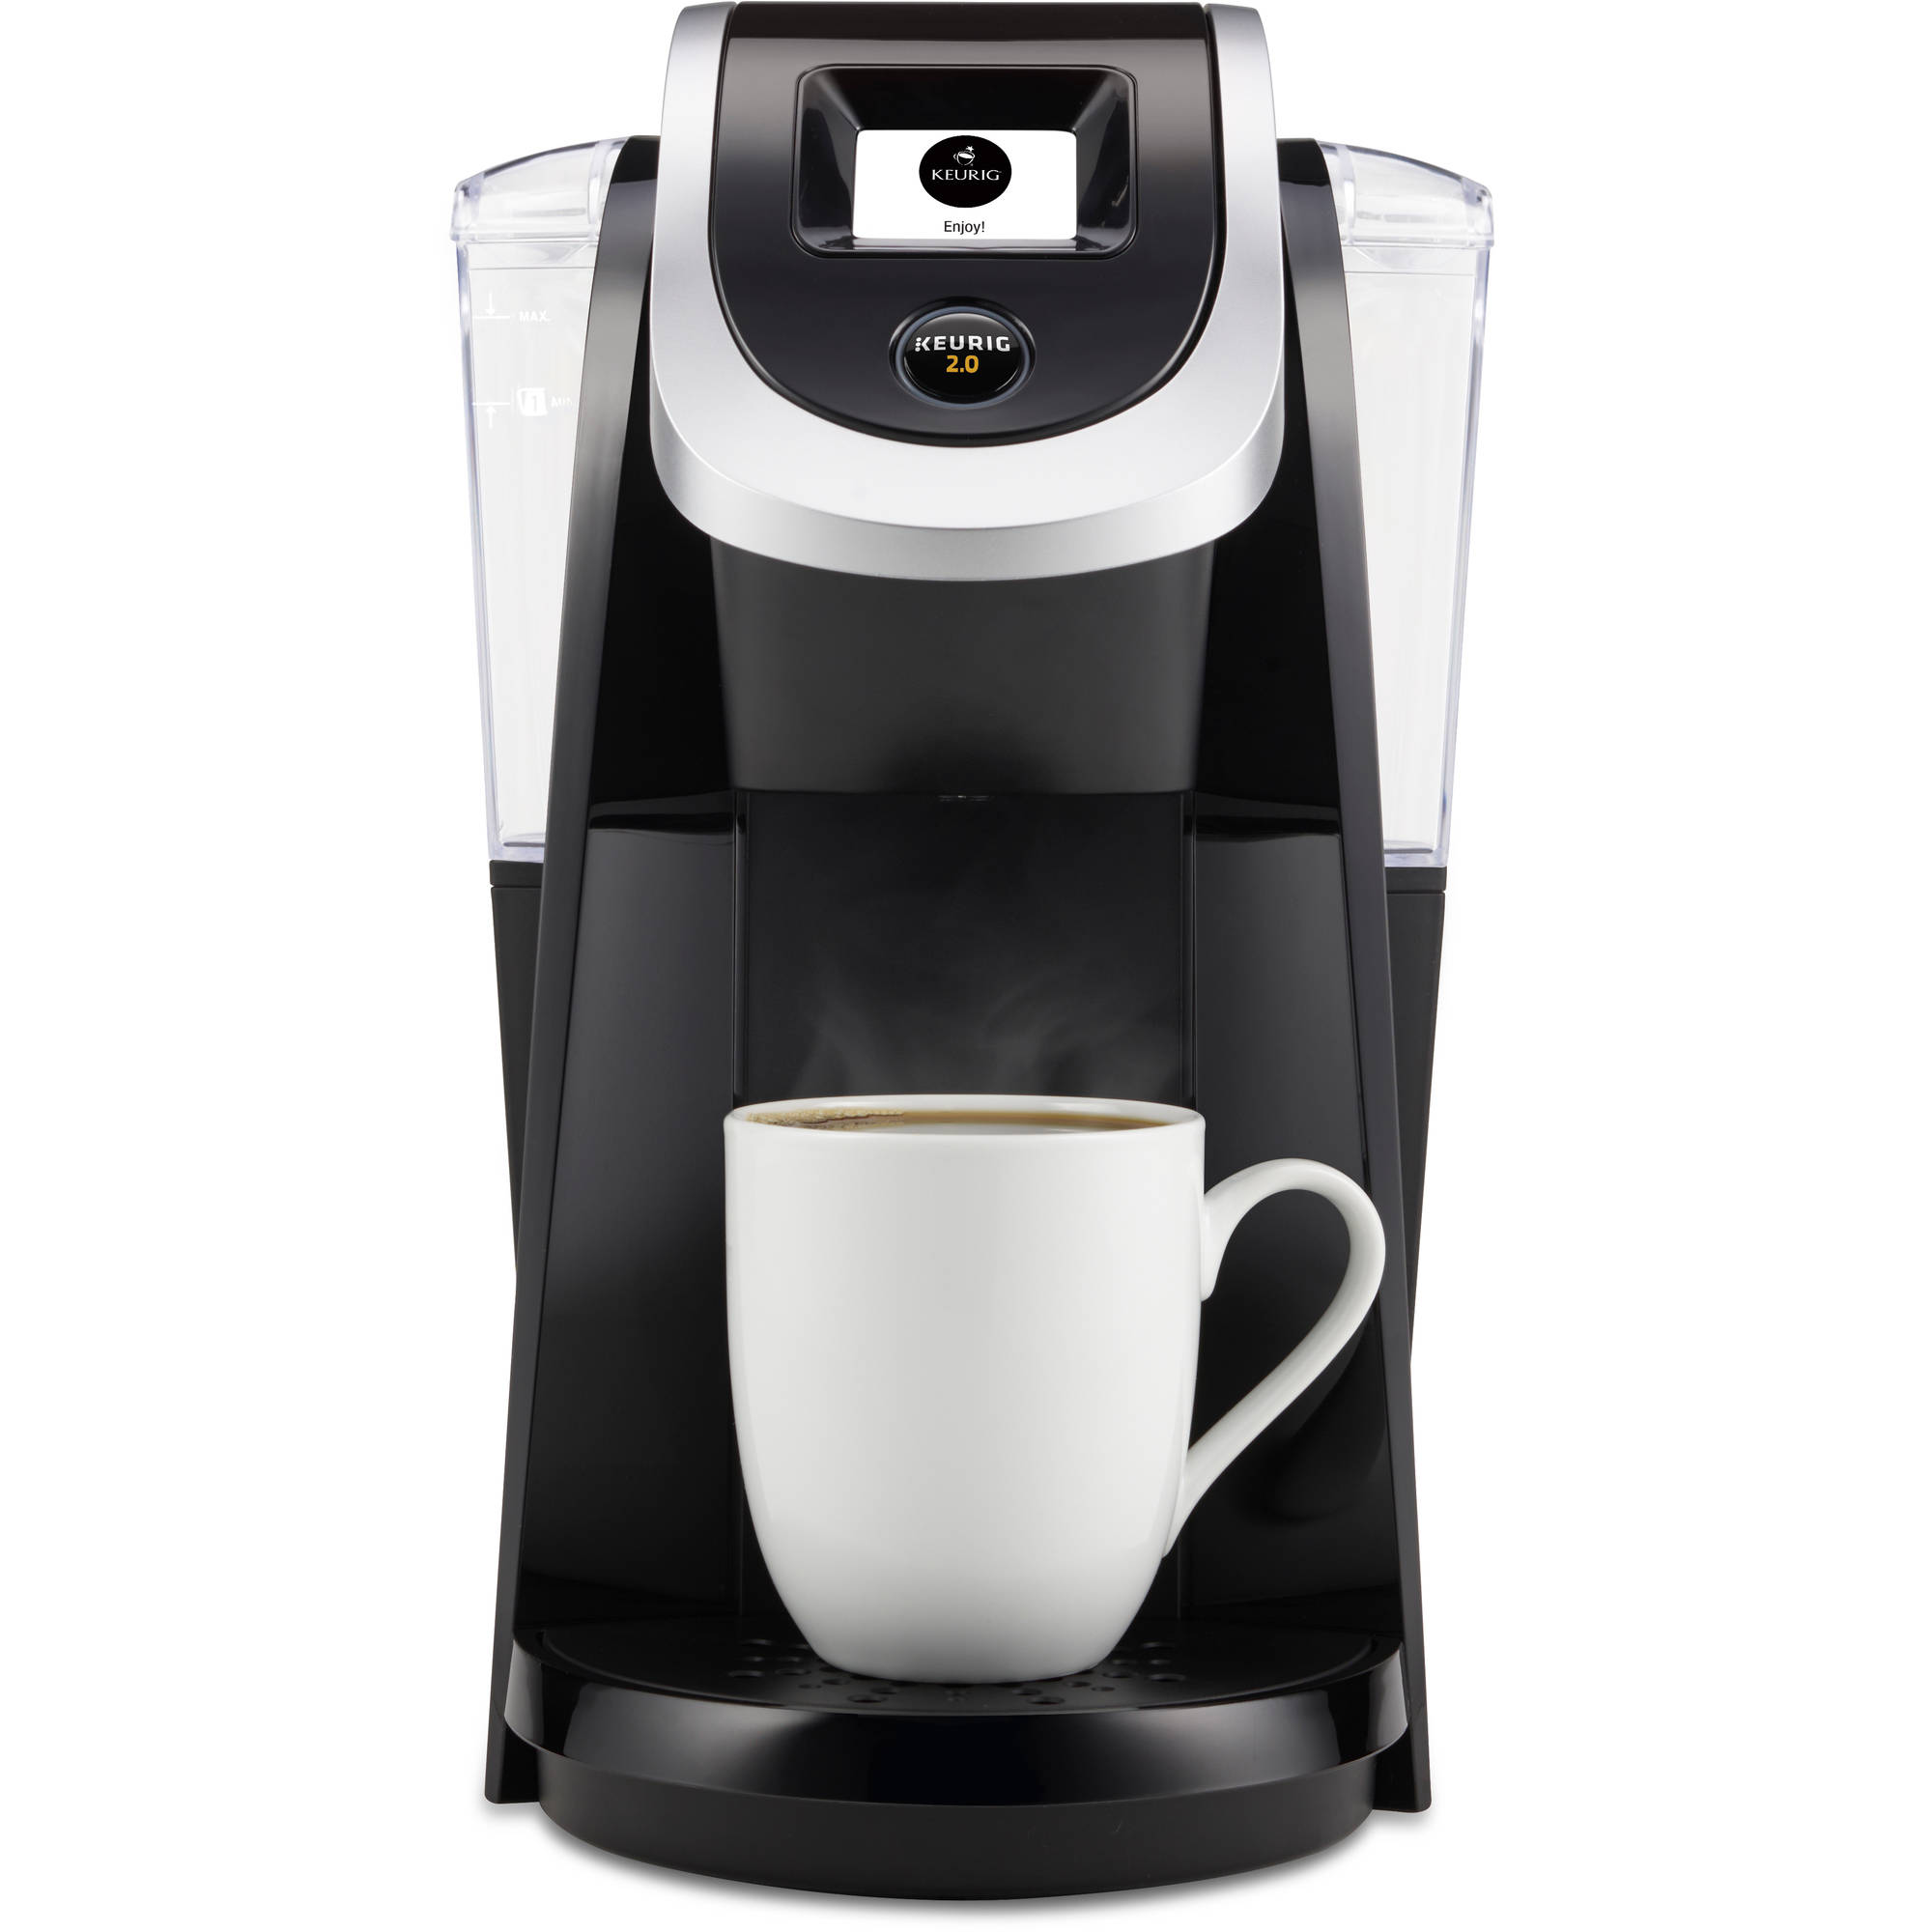 Keurig K2.0 K200 Coffeemaker Brewing System, Multiple Colors - Walmart.com